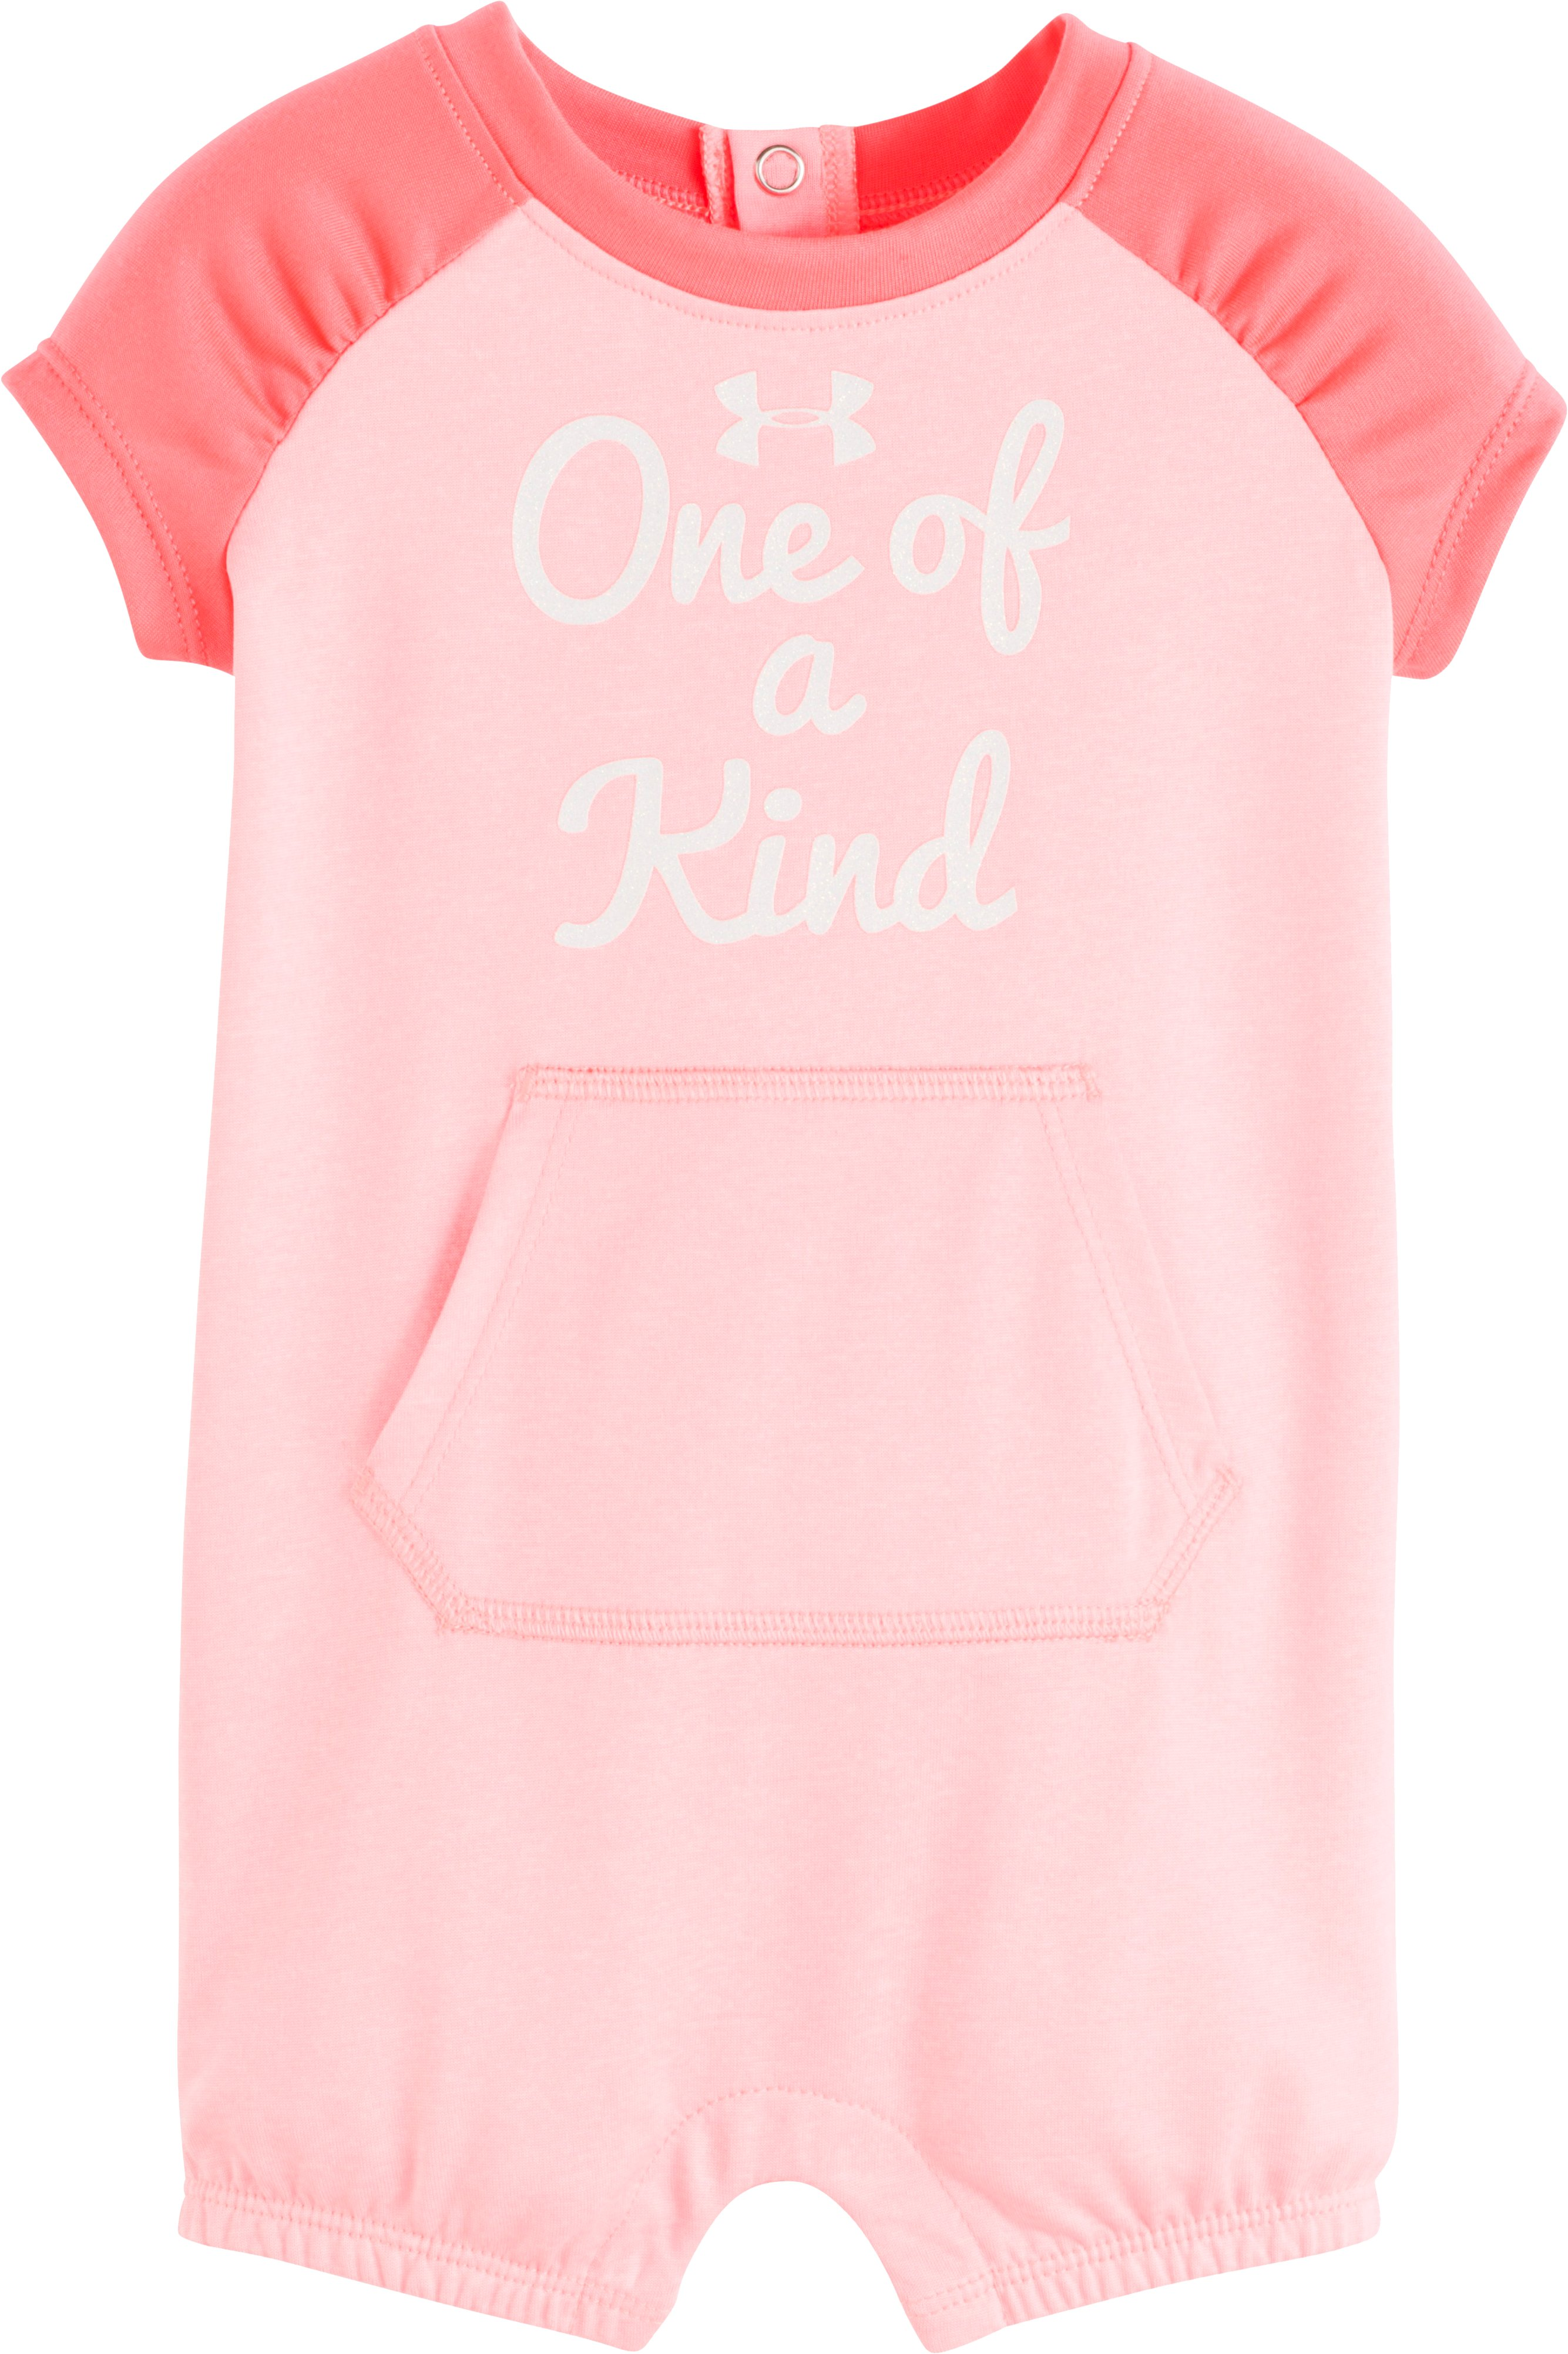 Girls' Infant UA One Of A Kind Shortall, Cape Coral, zoomed